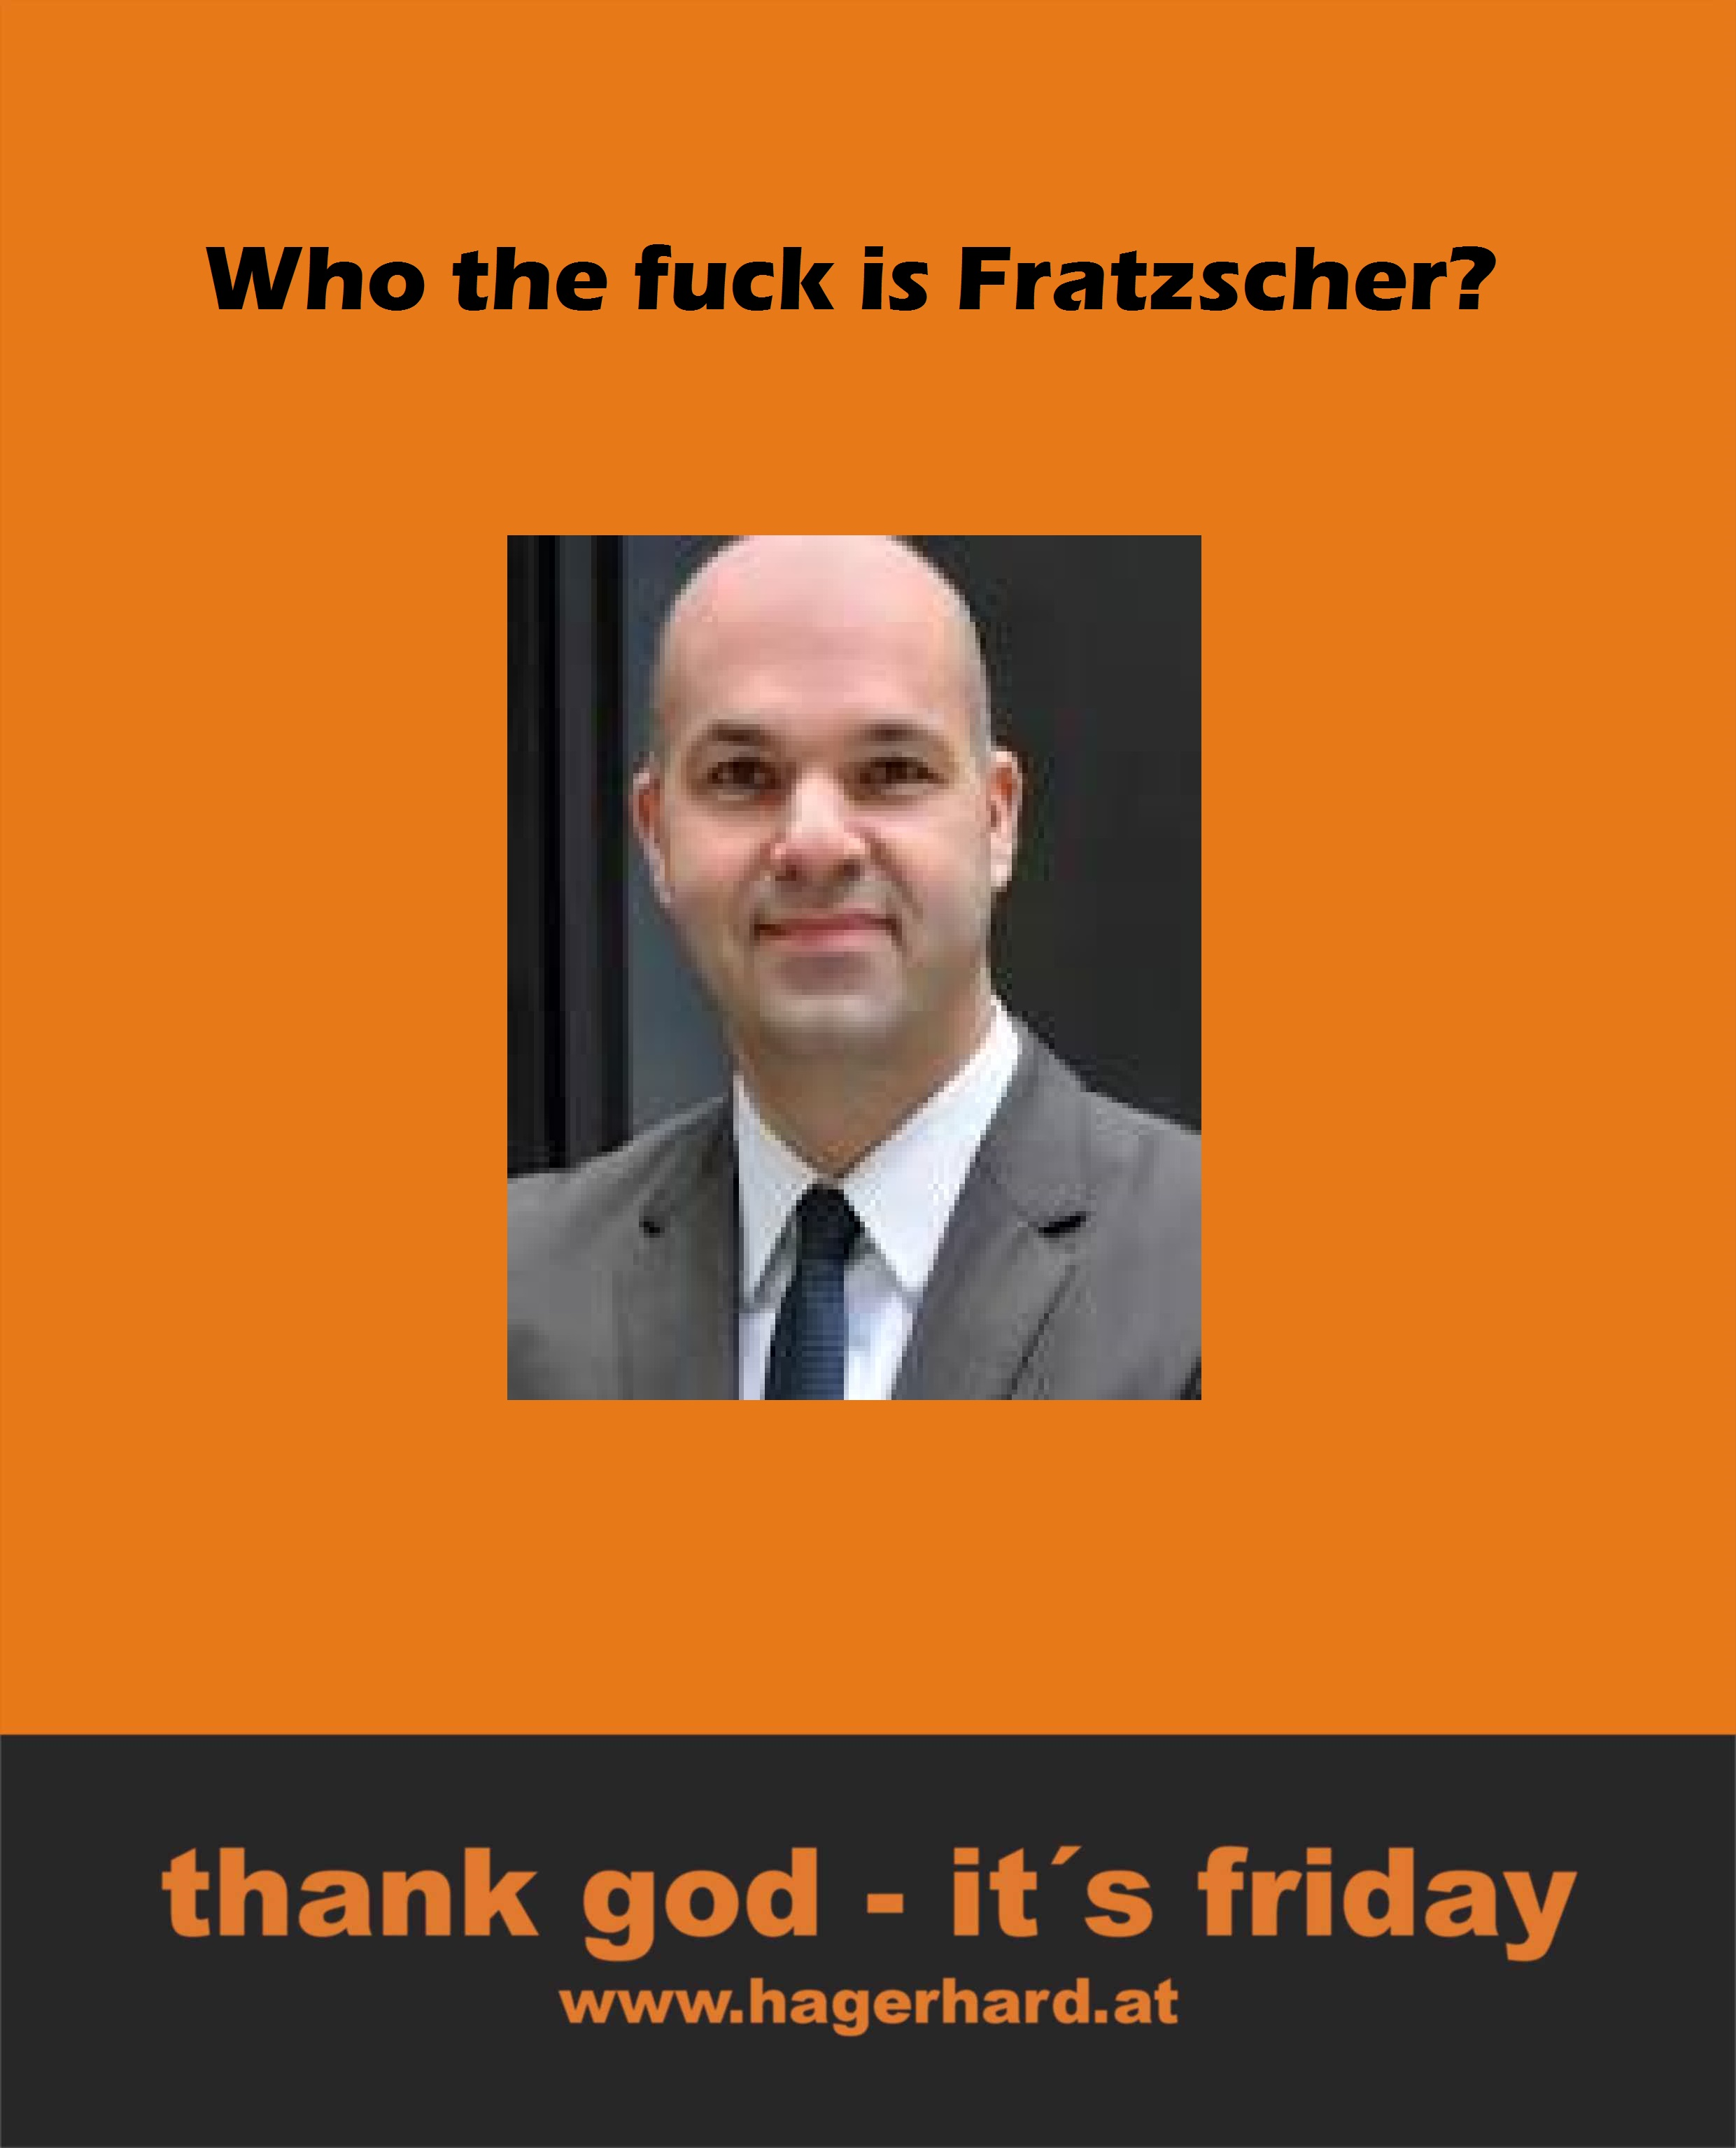 Who the fuck is Fratzscher?